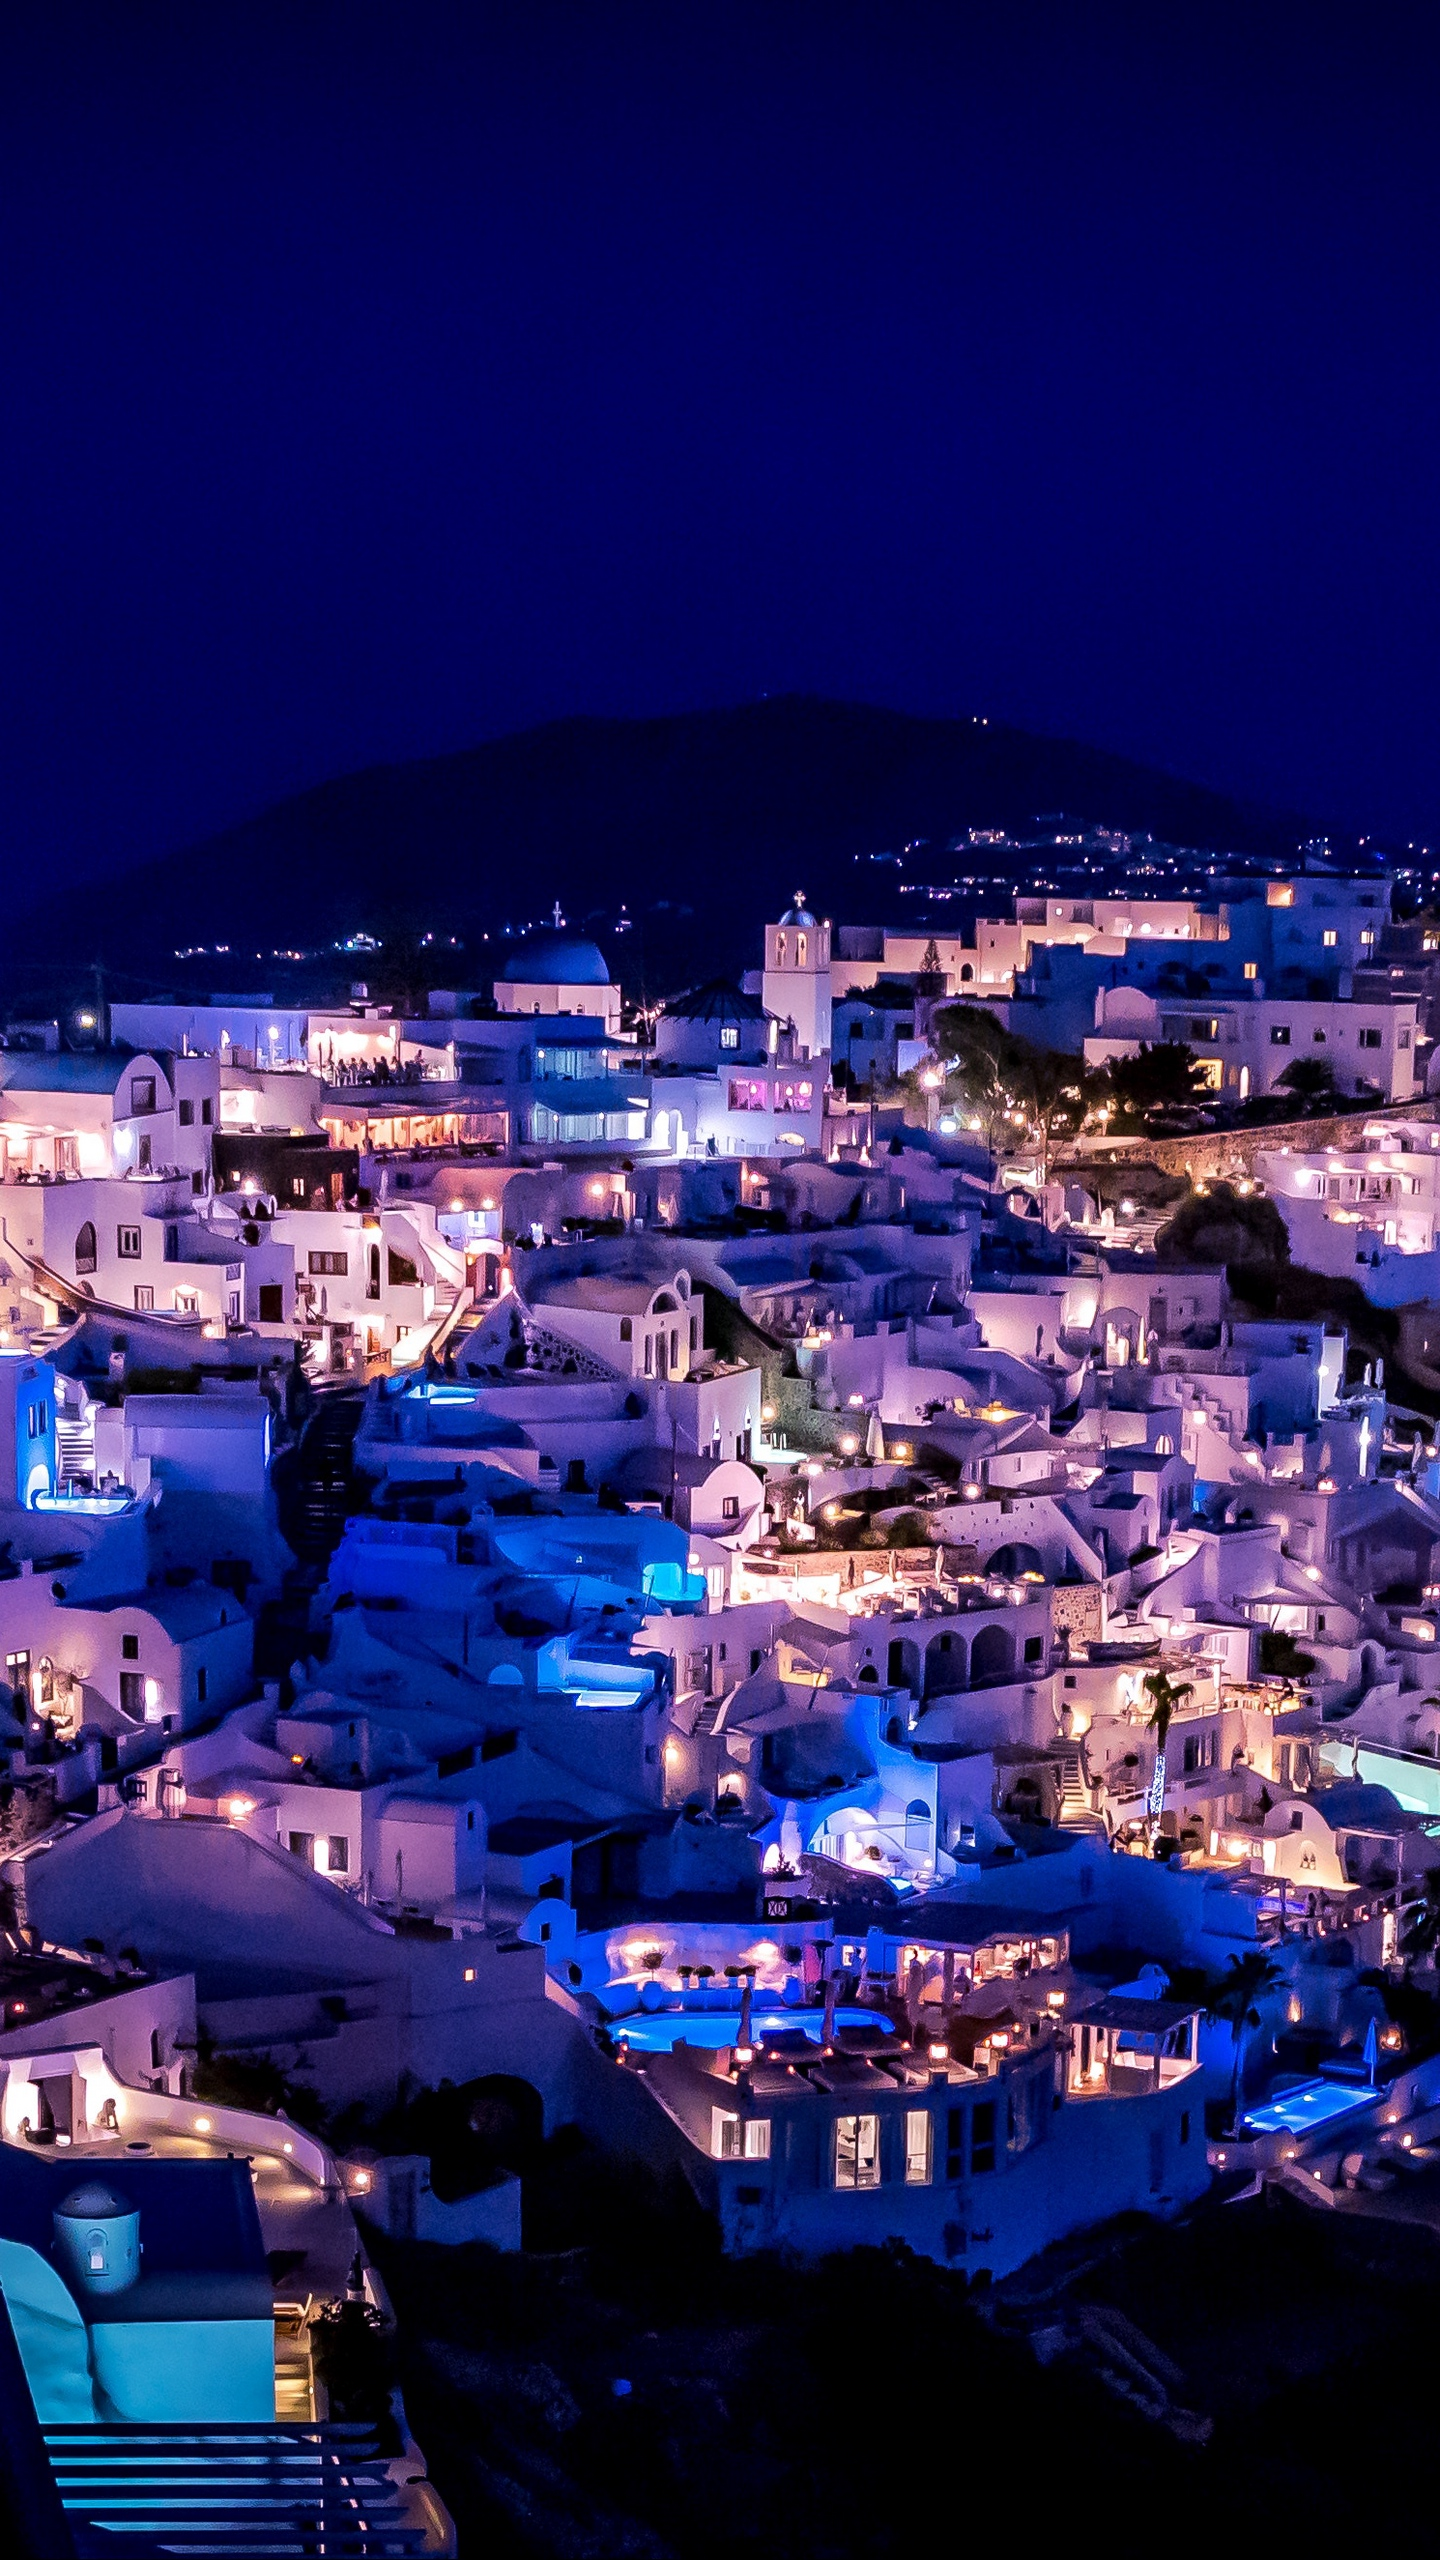 Download wallpaper 1440x2560 santorini greece night city 1440x2560